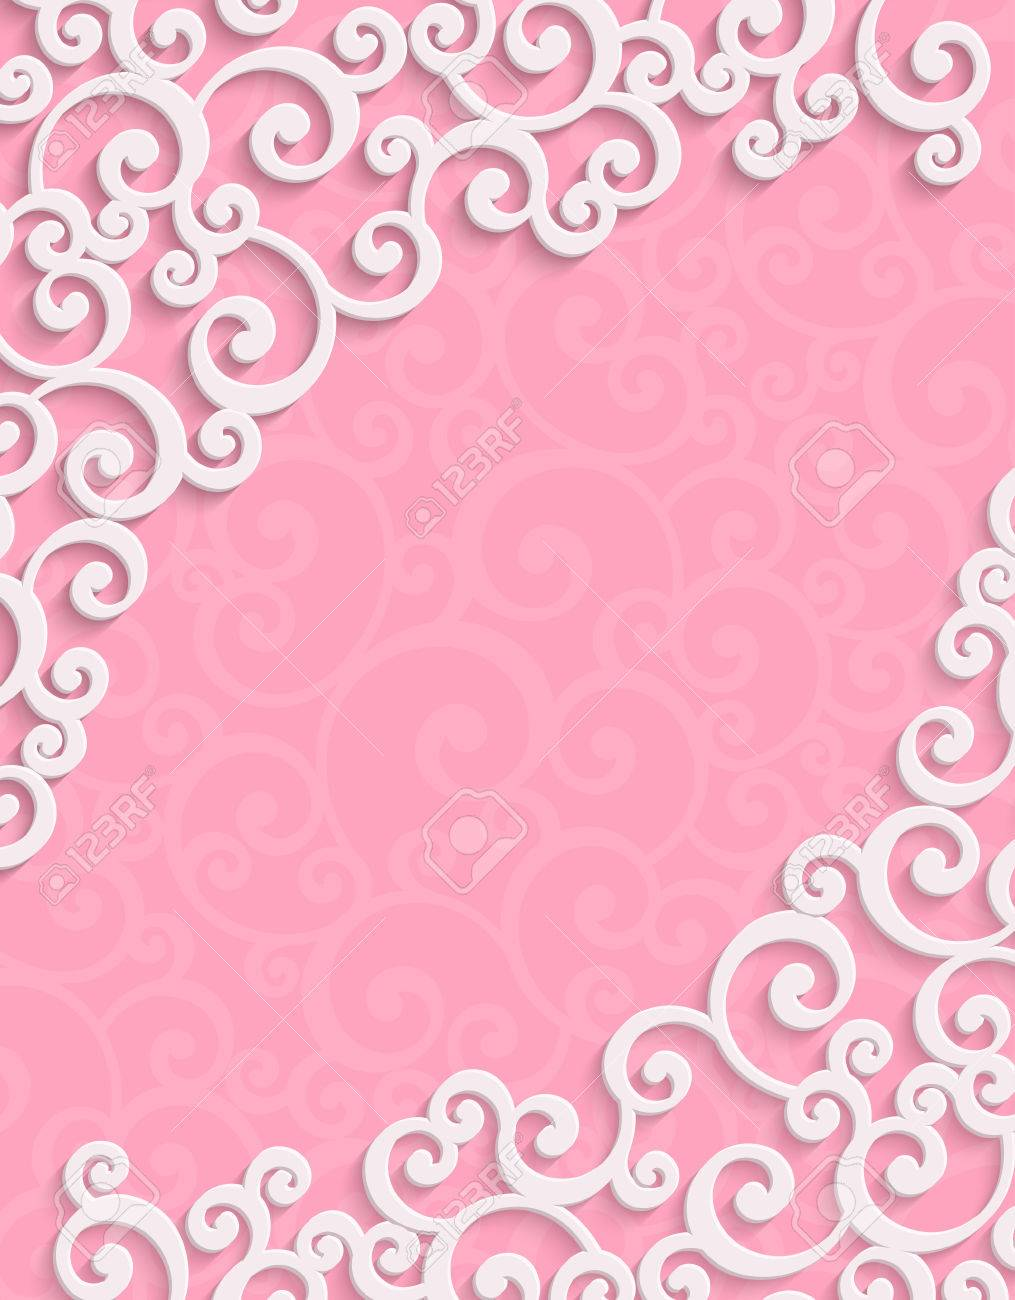 Pink 3d floral swirl vertical background with curl pattern for pink 3d floral swirl vertical background with curl pattern for valentines day or wedding invitation card stopboris Choice Image